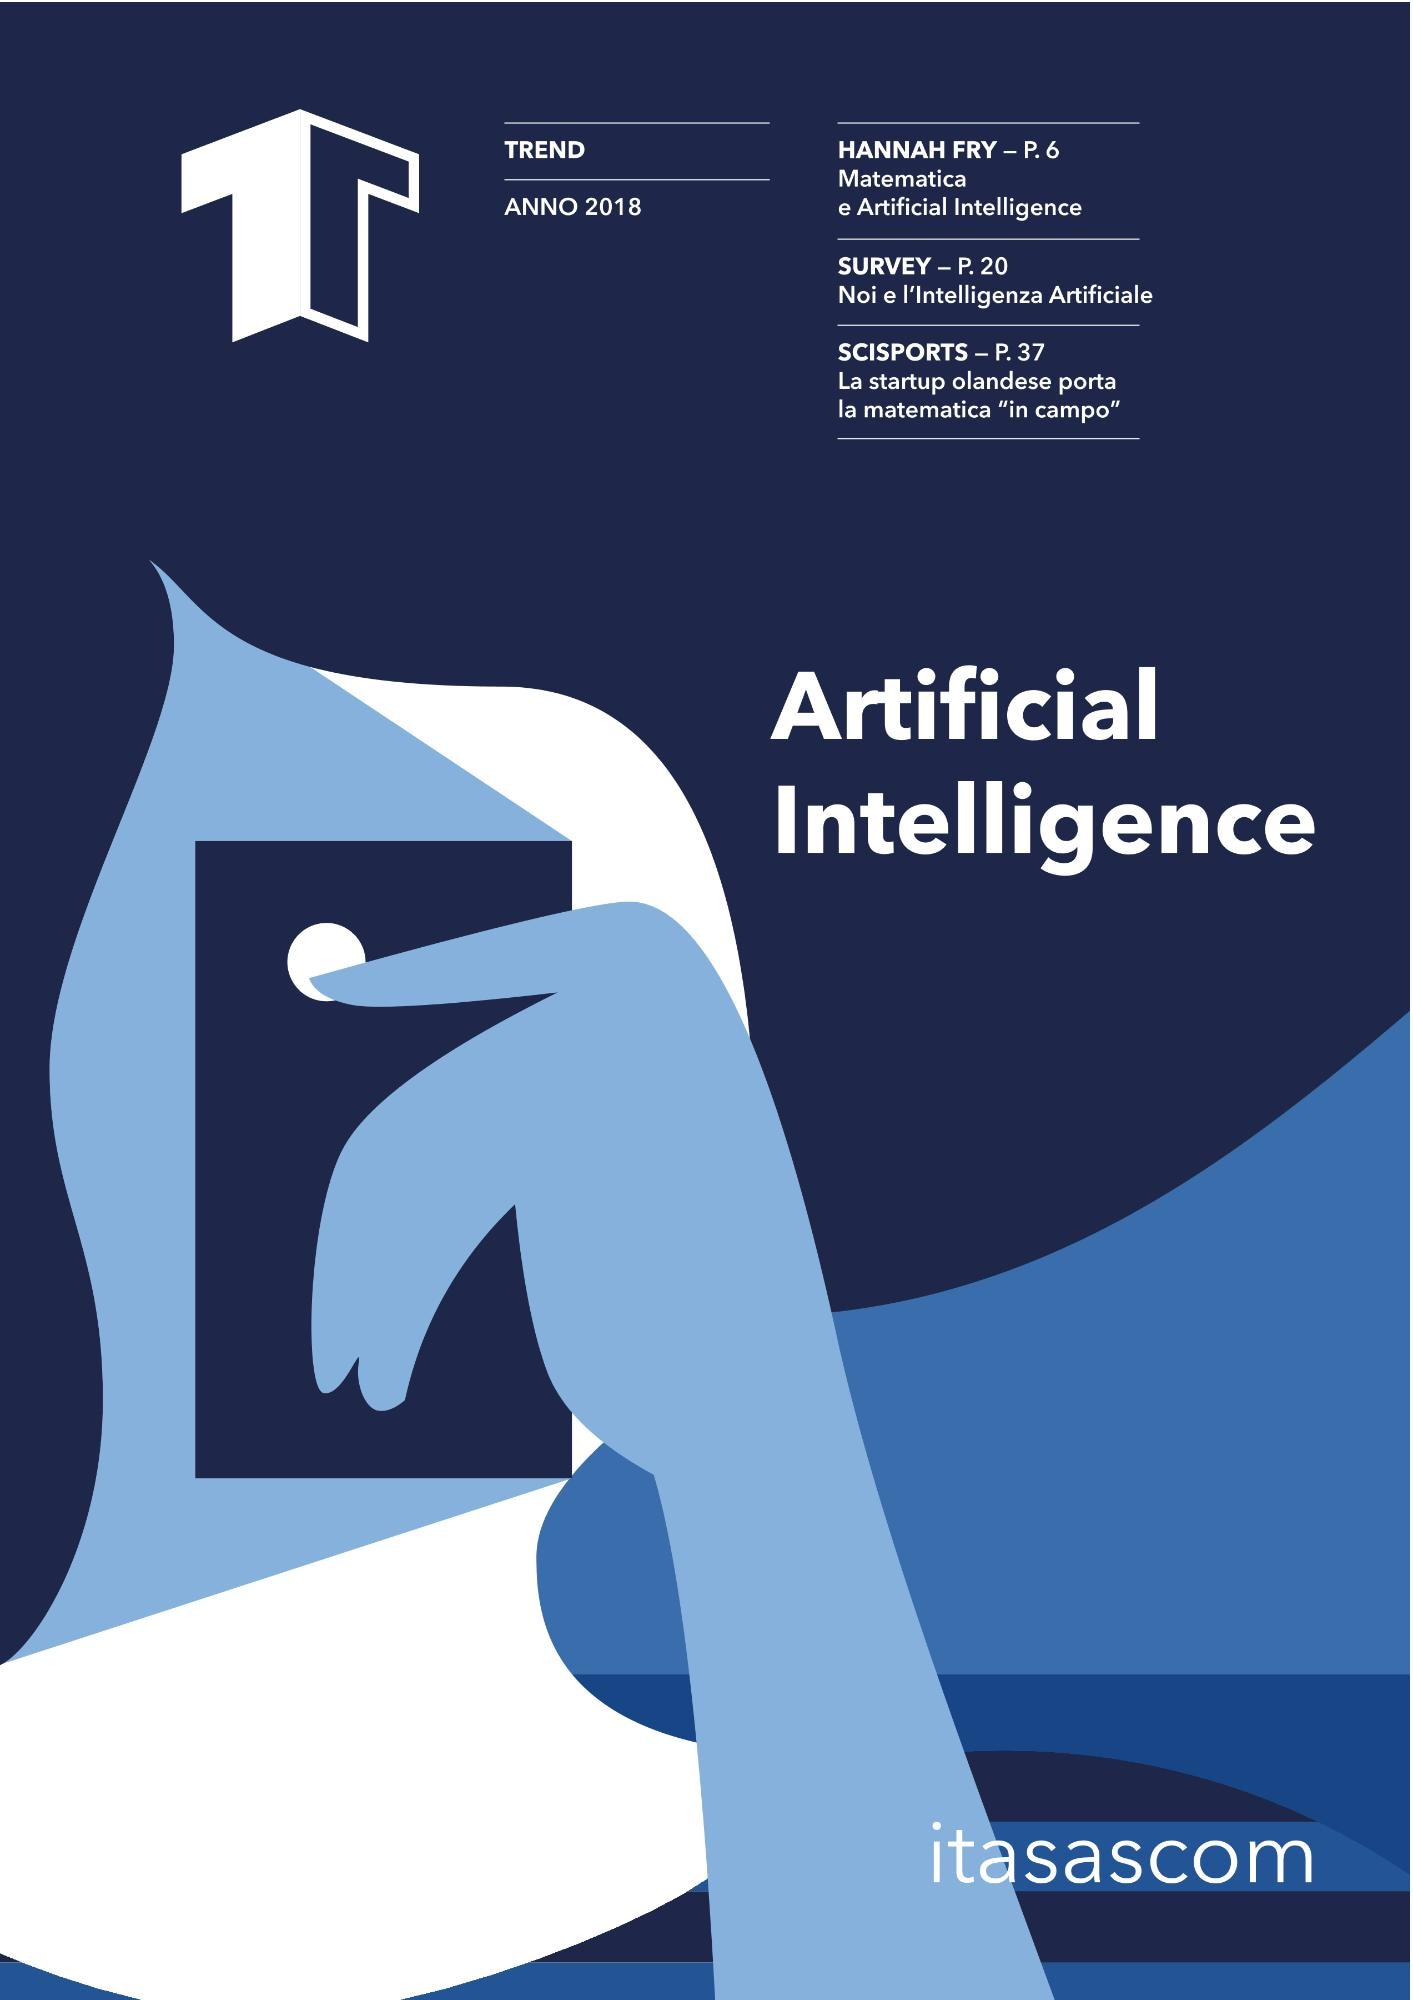 Trend by itasascom magazine, Artificial Intelligence